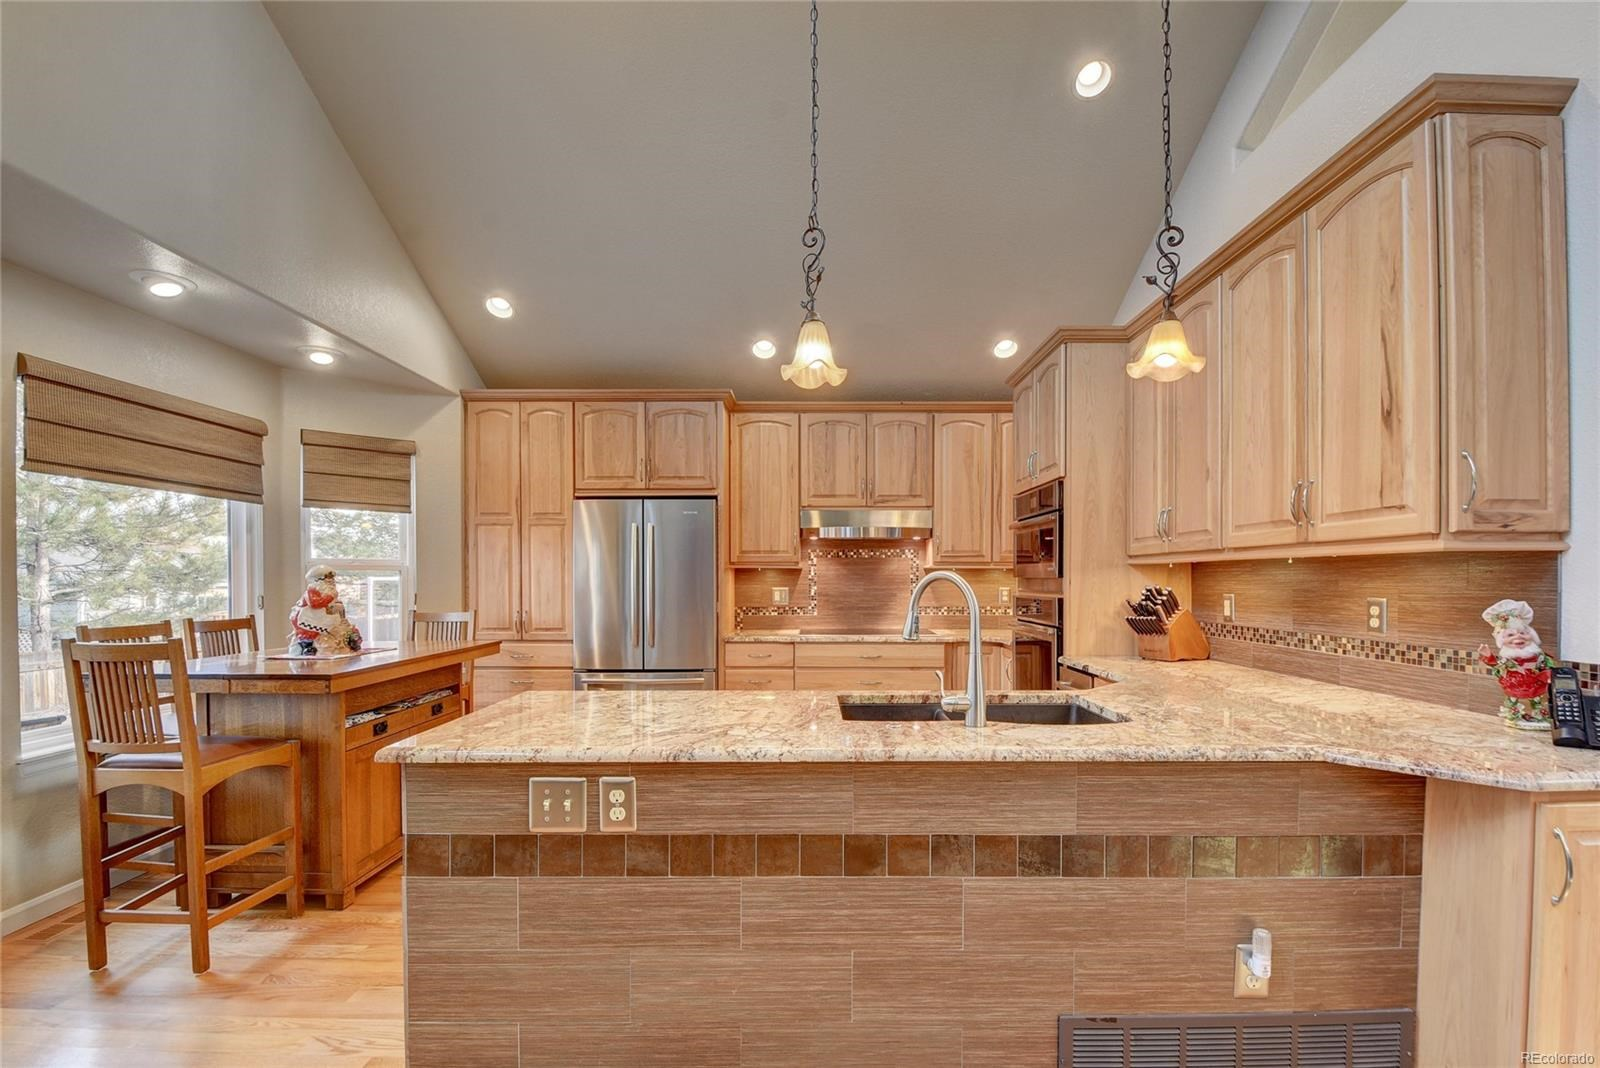 MLS# 9913436 - 8 - 5726 W 81st Place, Arvada, CO 80003